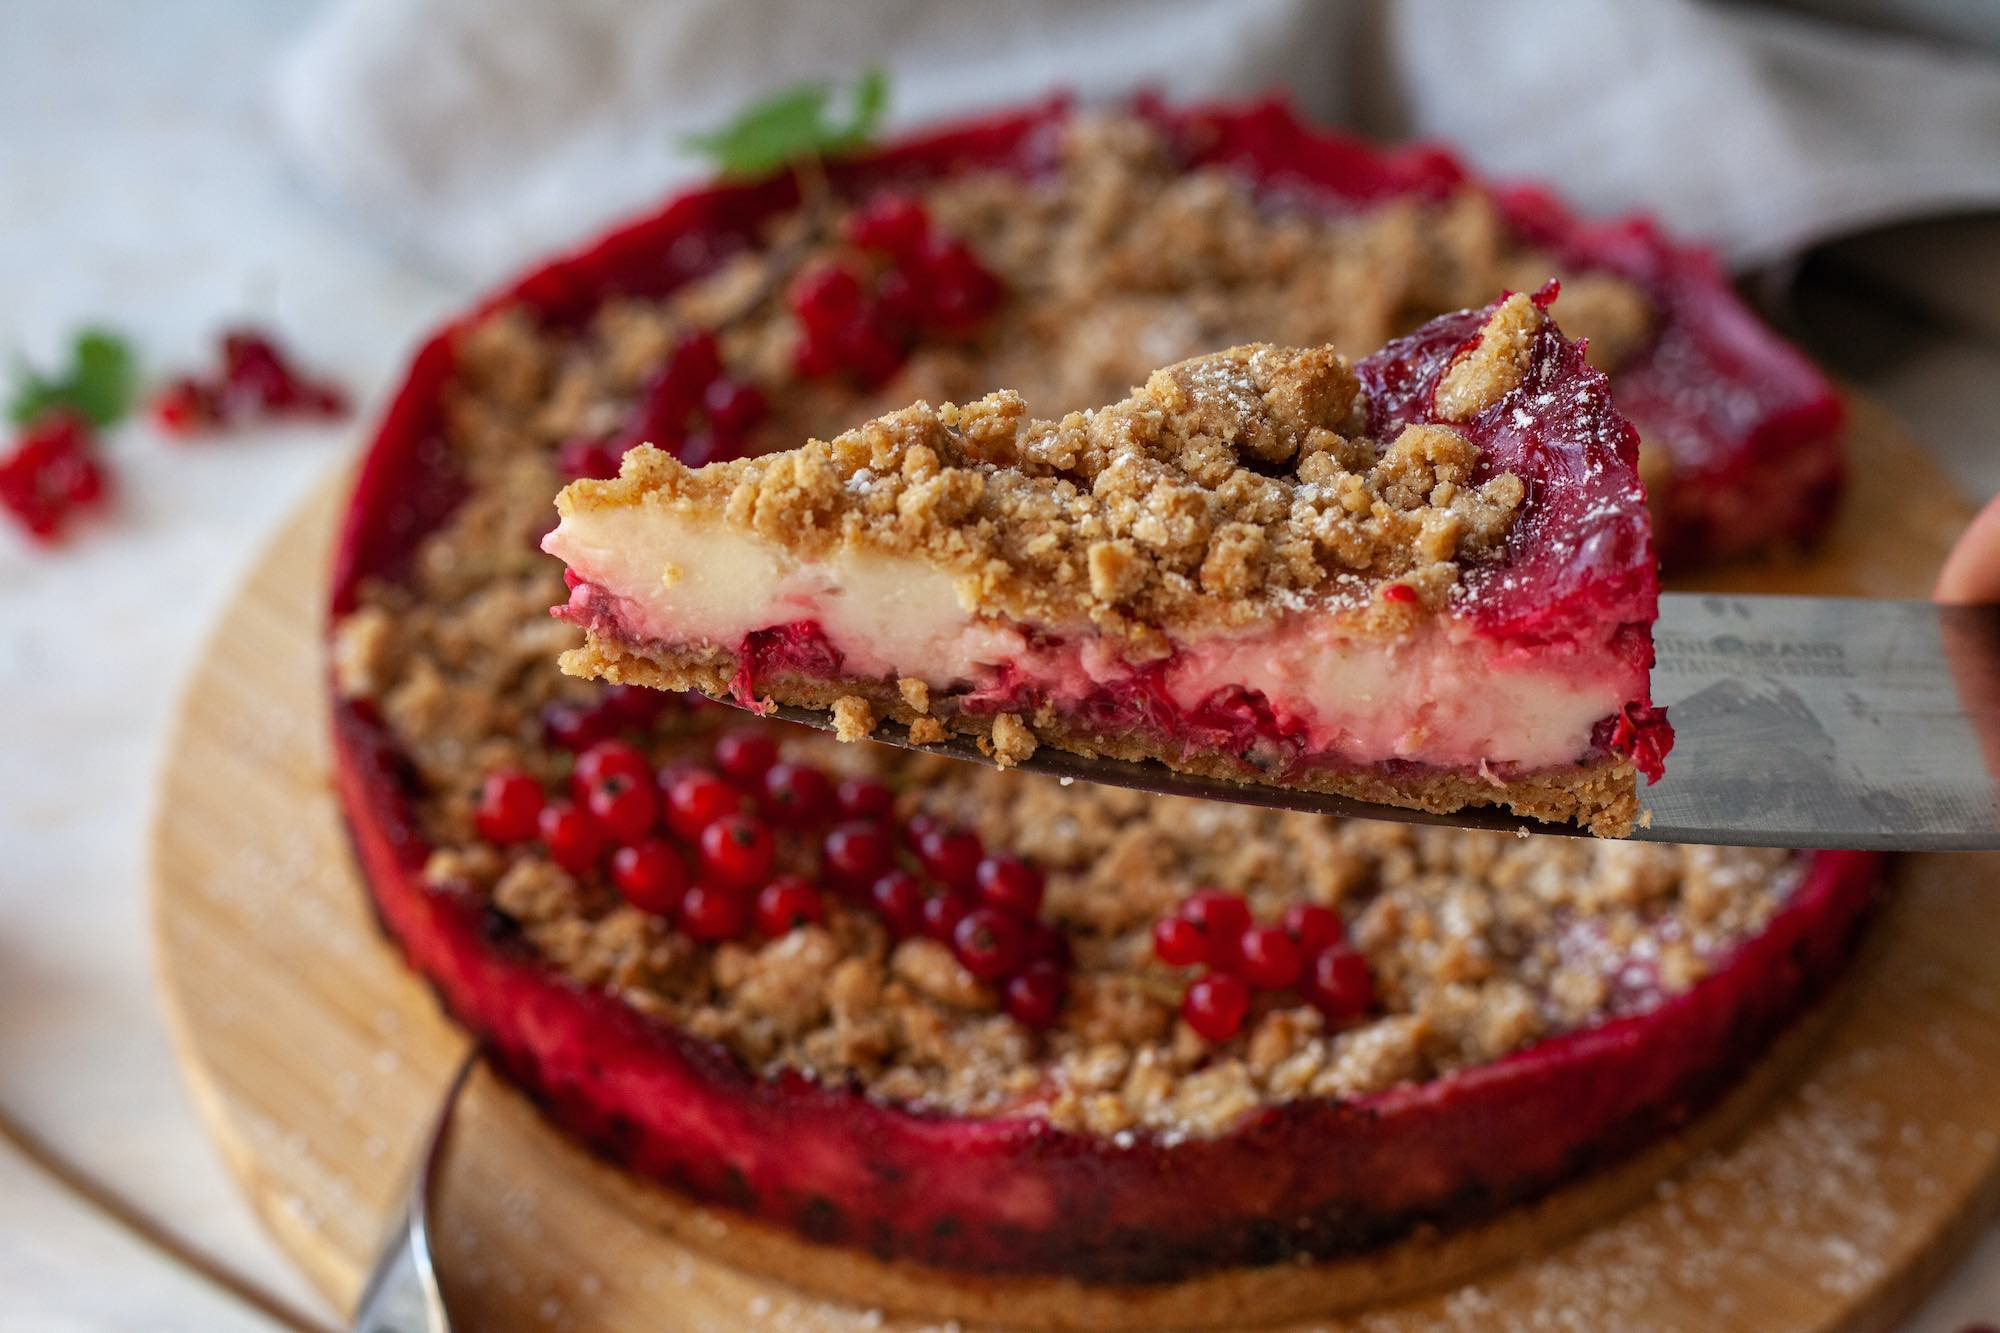 Red Currant and Vanilla Tart